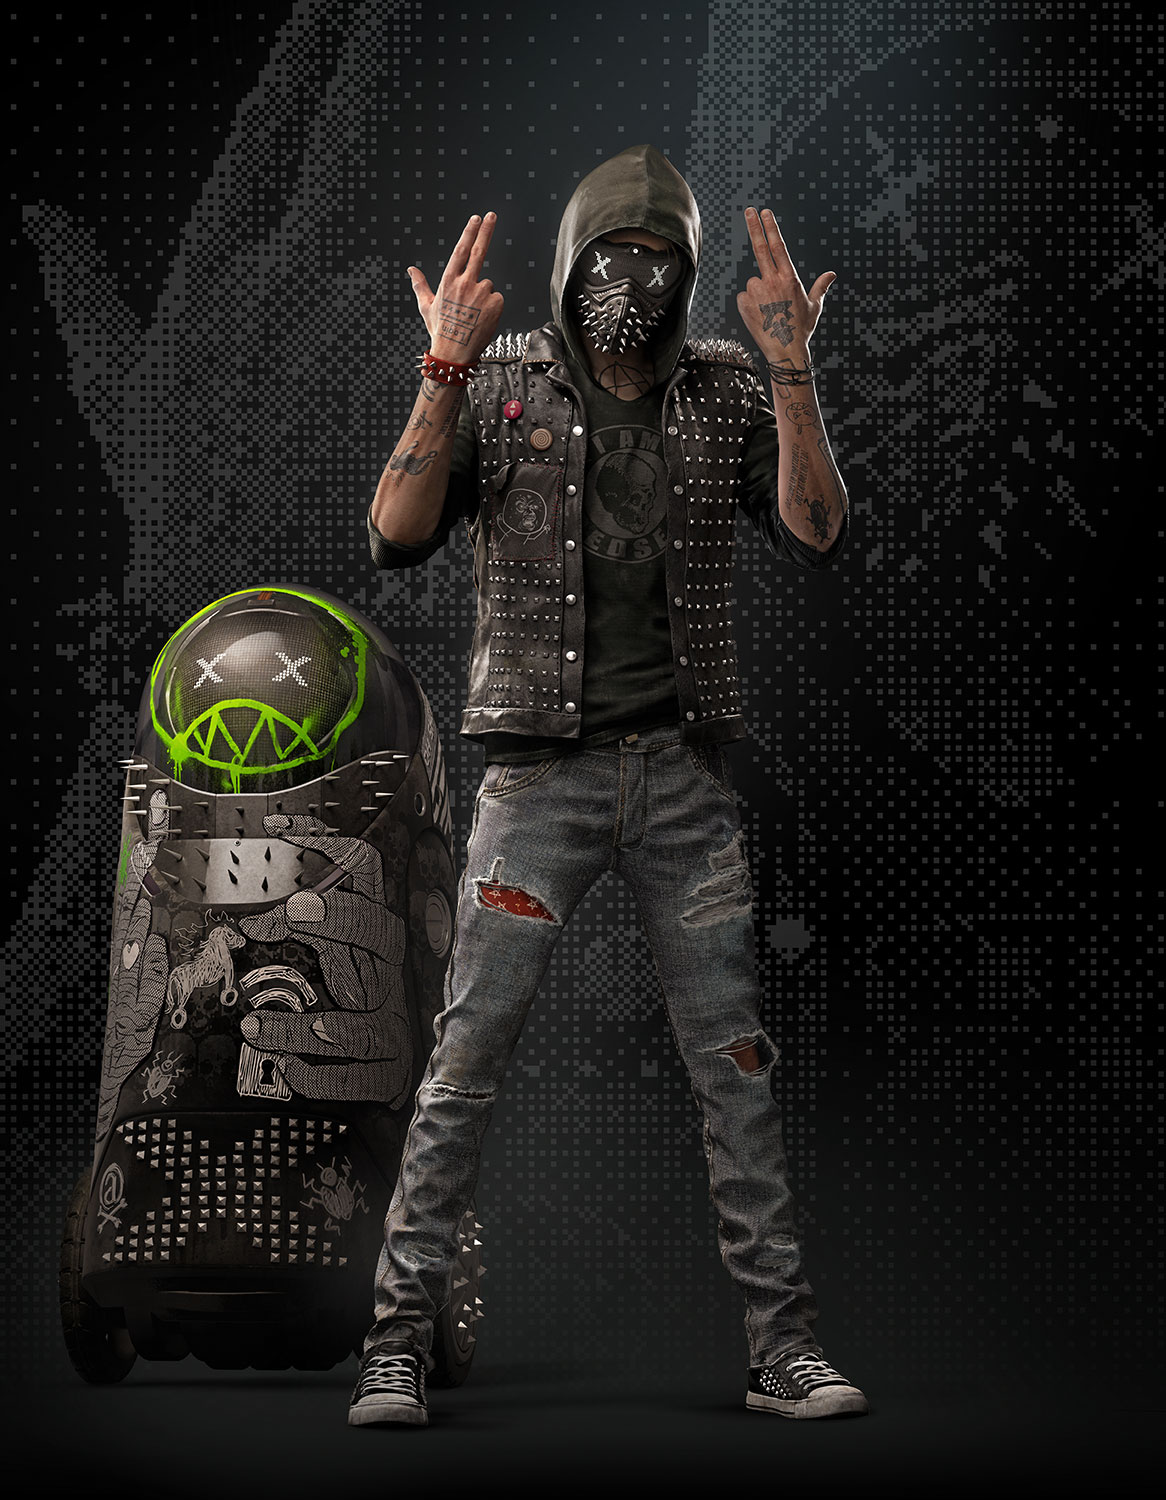 Wrench from Watch Dogs 2. Image from Ubisoft.